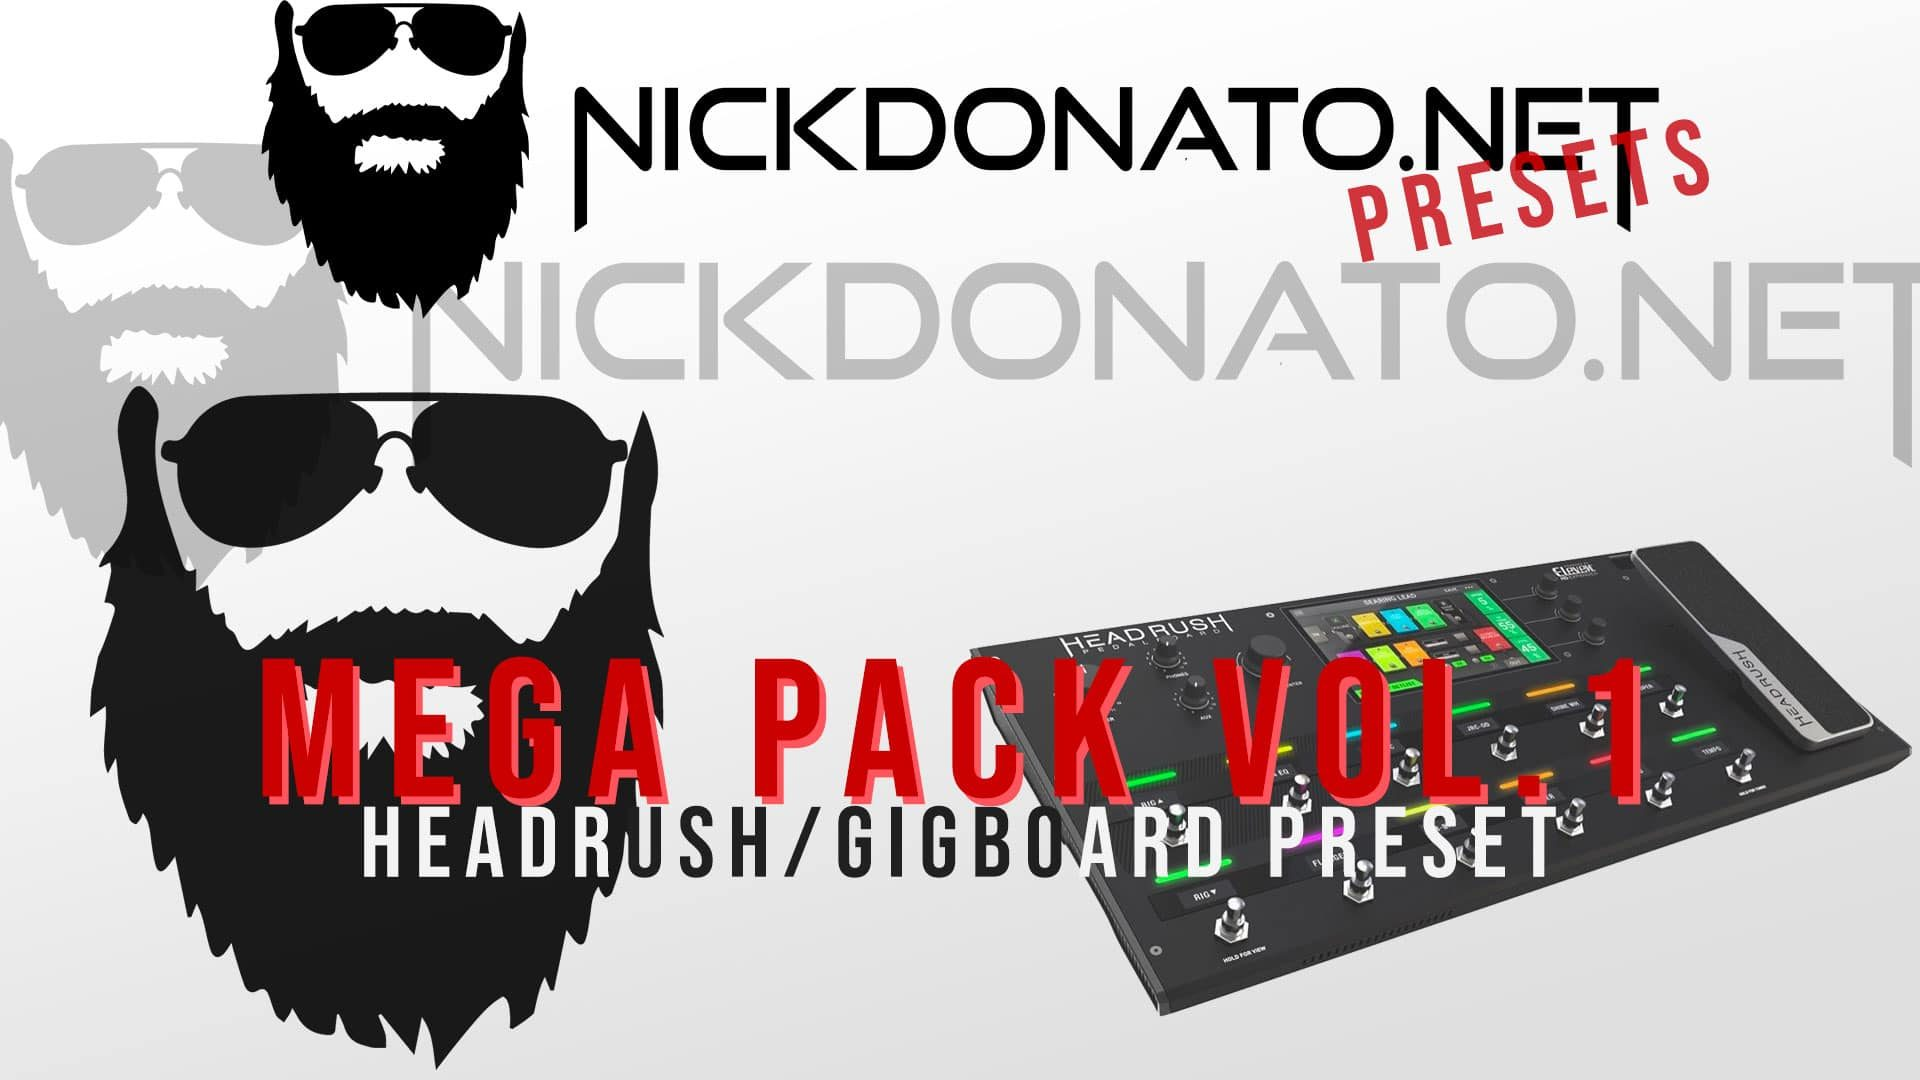 Big Pack Headrush vol 1